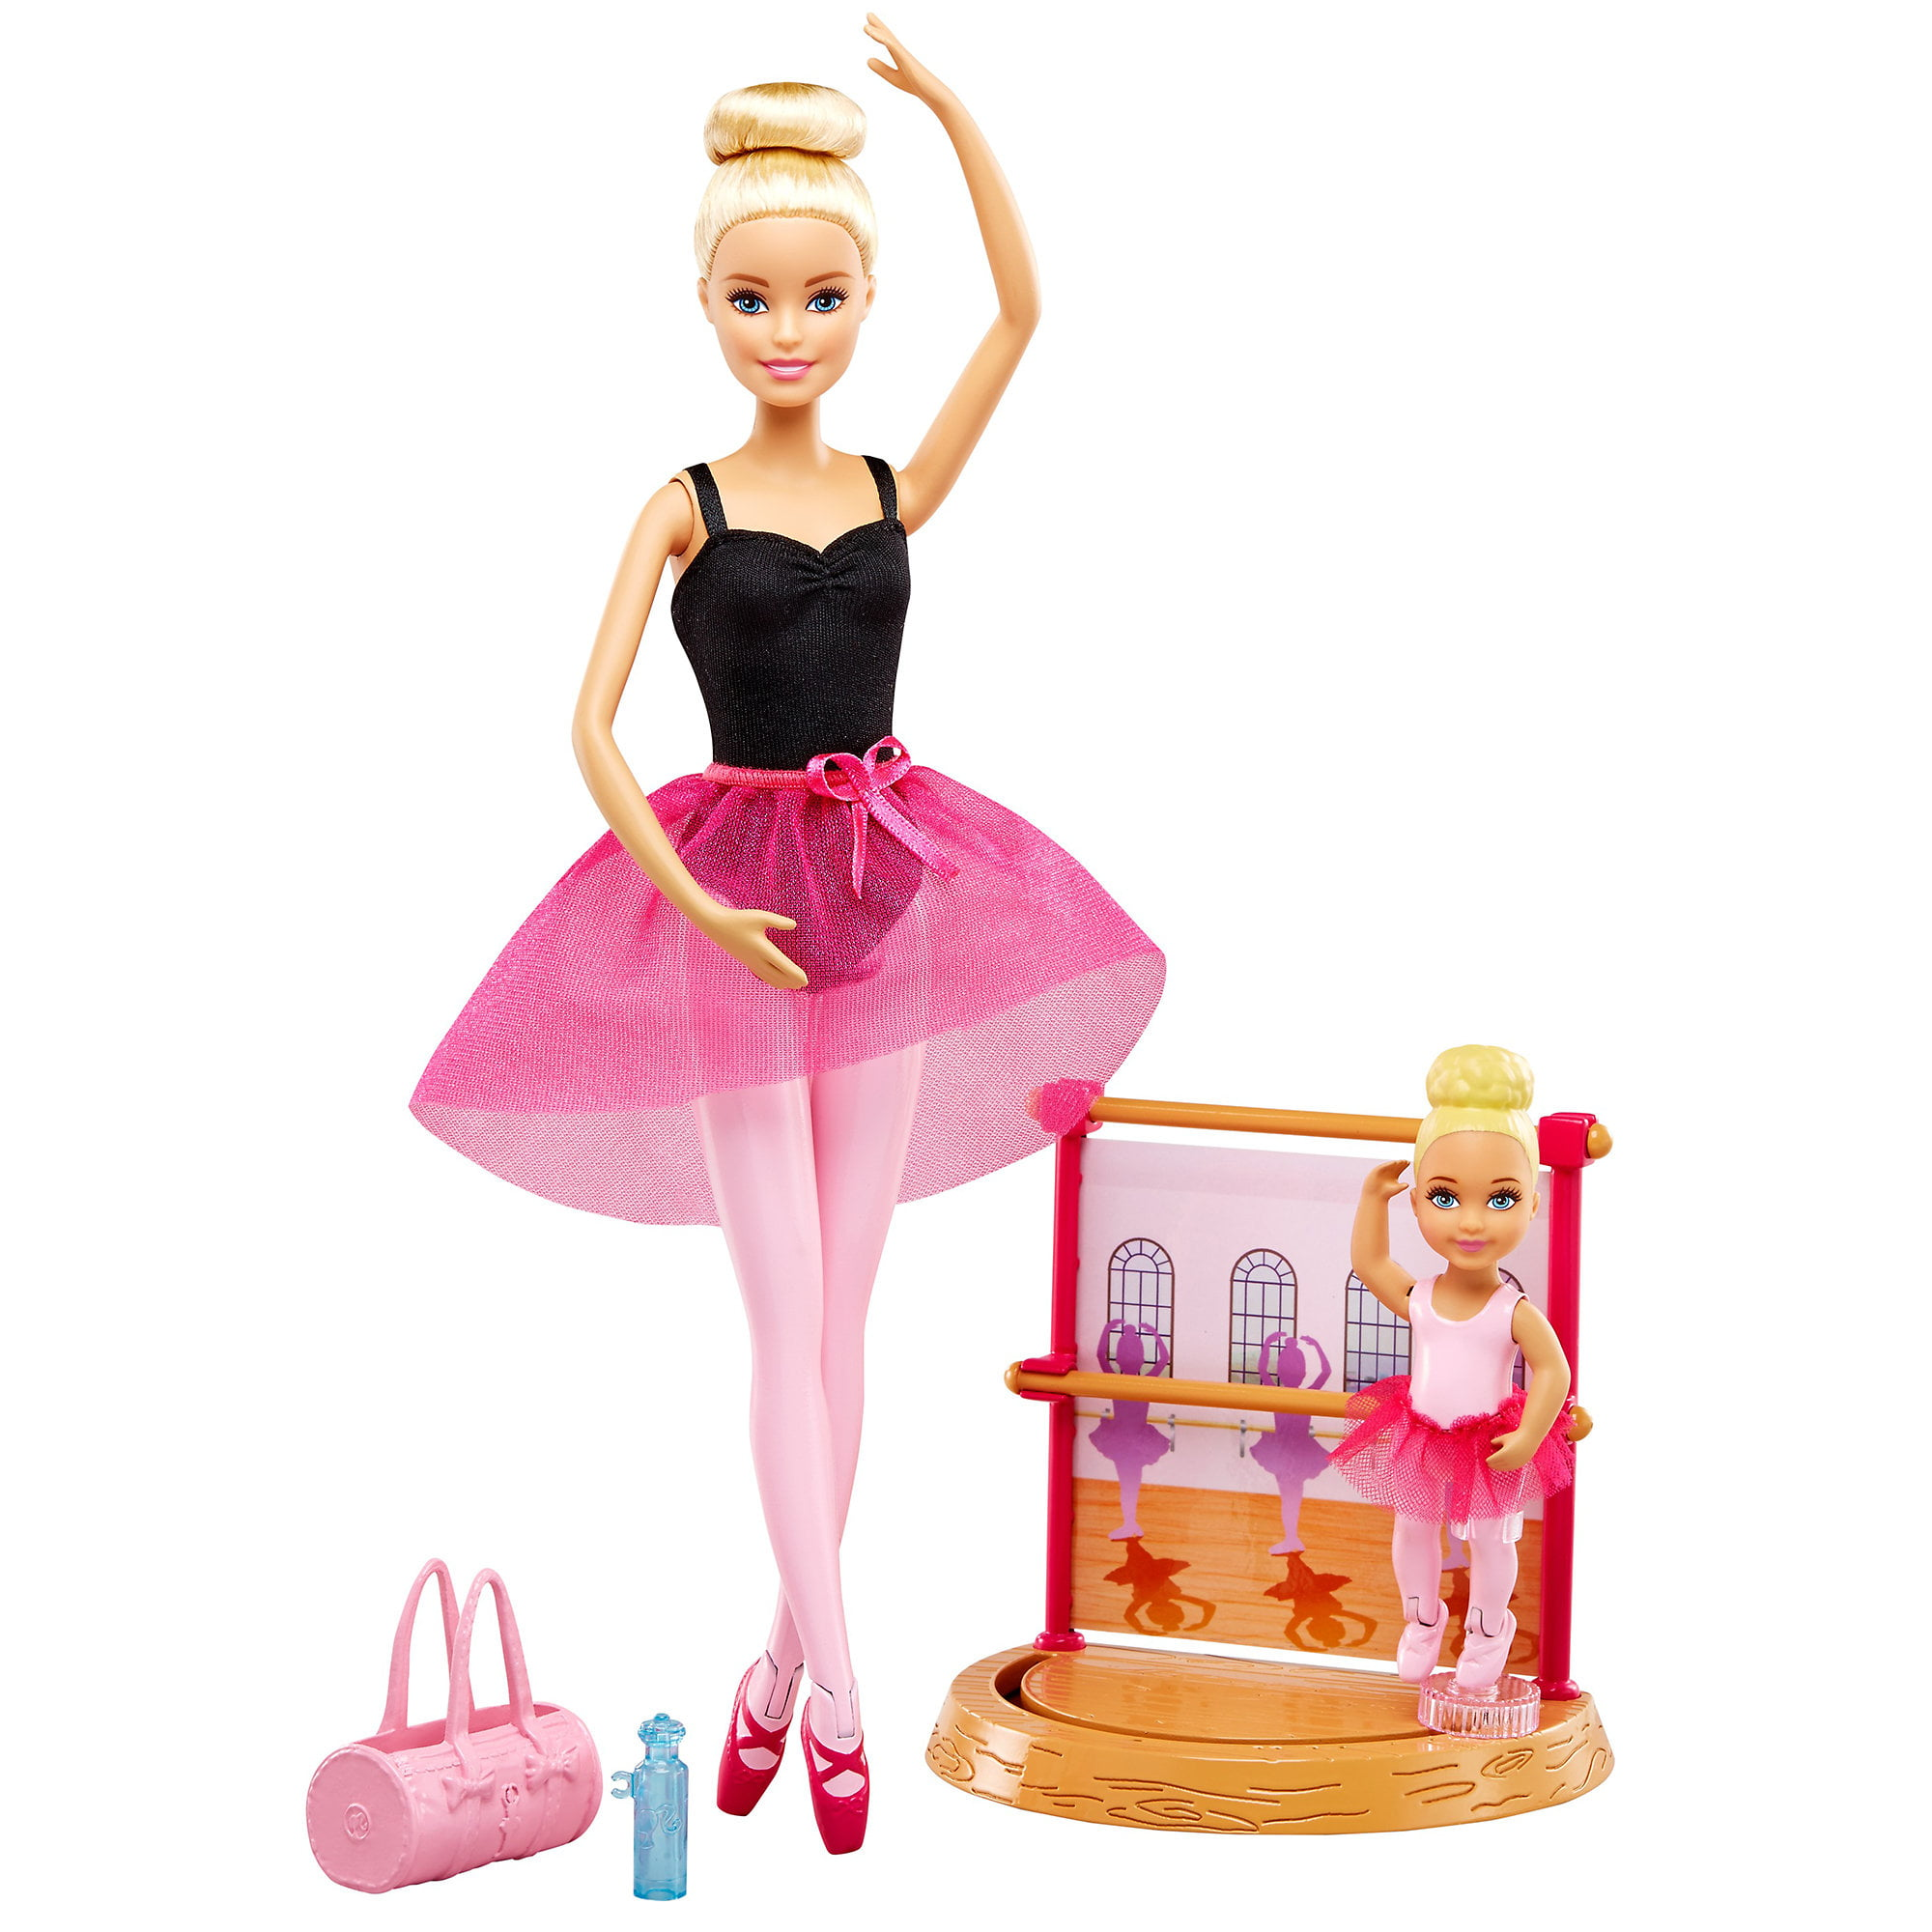 Barbie Doll Dance Coach Playset with 2 Dolls and Working Stage by Barbie